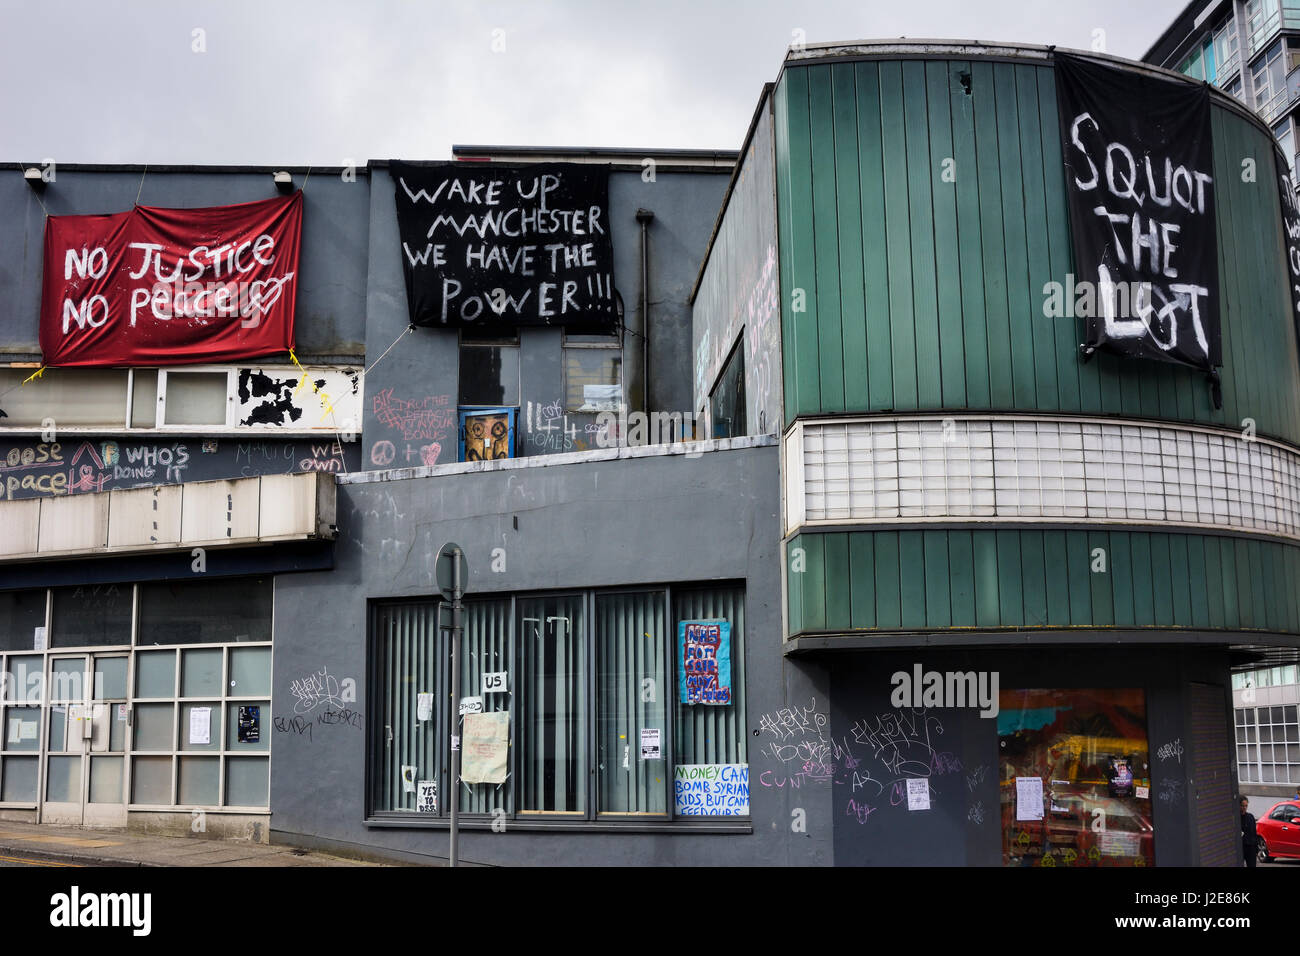 The Cornerhouse building, once a popular cinema at Oxford Road Railway Station taken over by squatters. - Stock Image